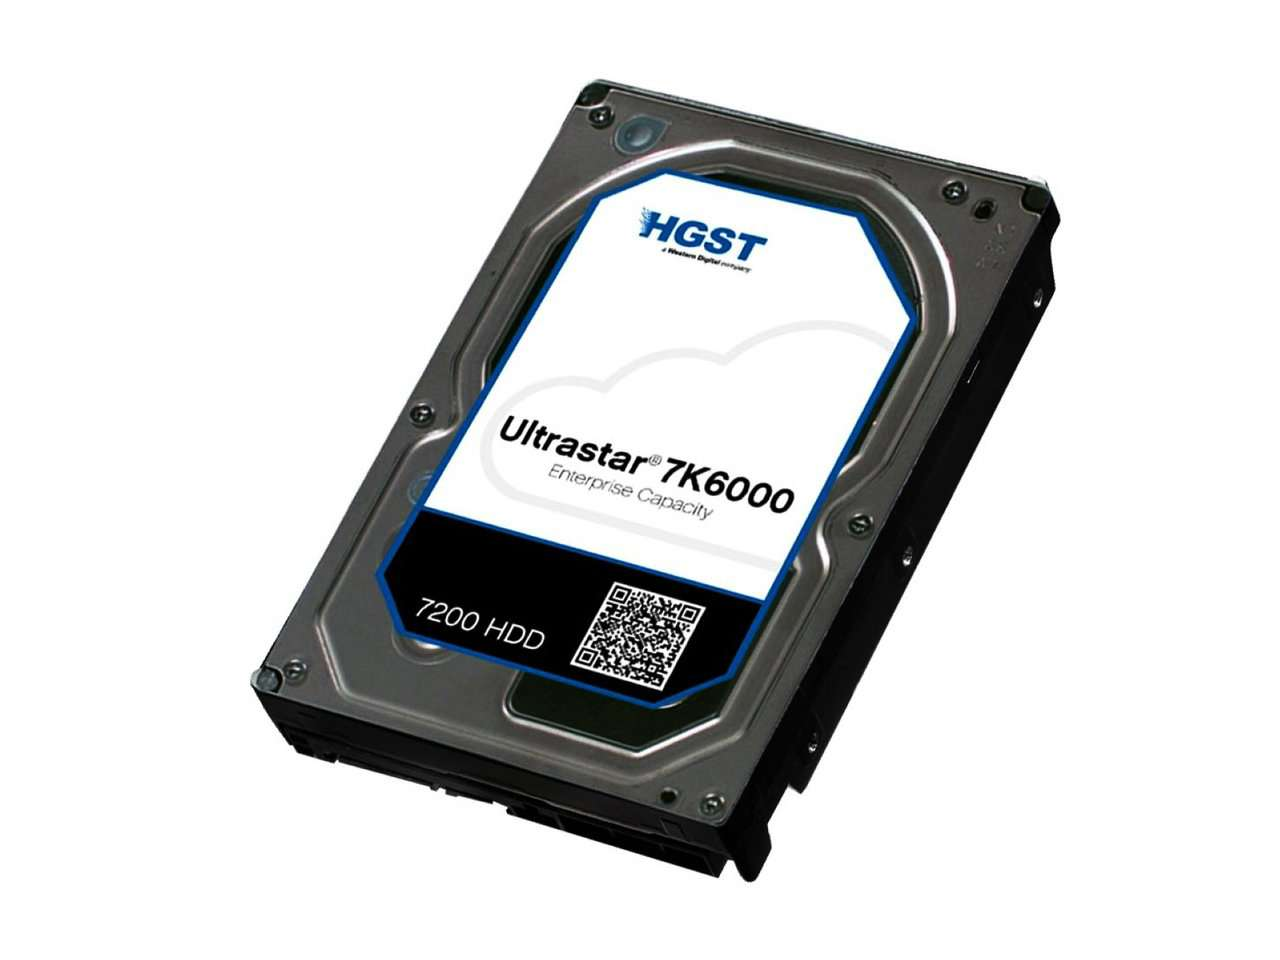 "HGST Ultrastar 7K6000 0F22790  HUS726060AL4210 6TB 7.2K RPM SAS 12Gb/s 4Kn 128MB Cache 3.5"" ISE Hard Disk Drive"